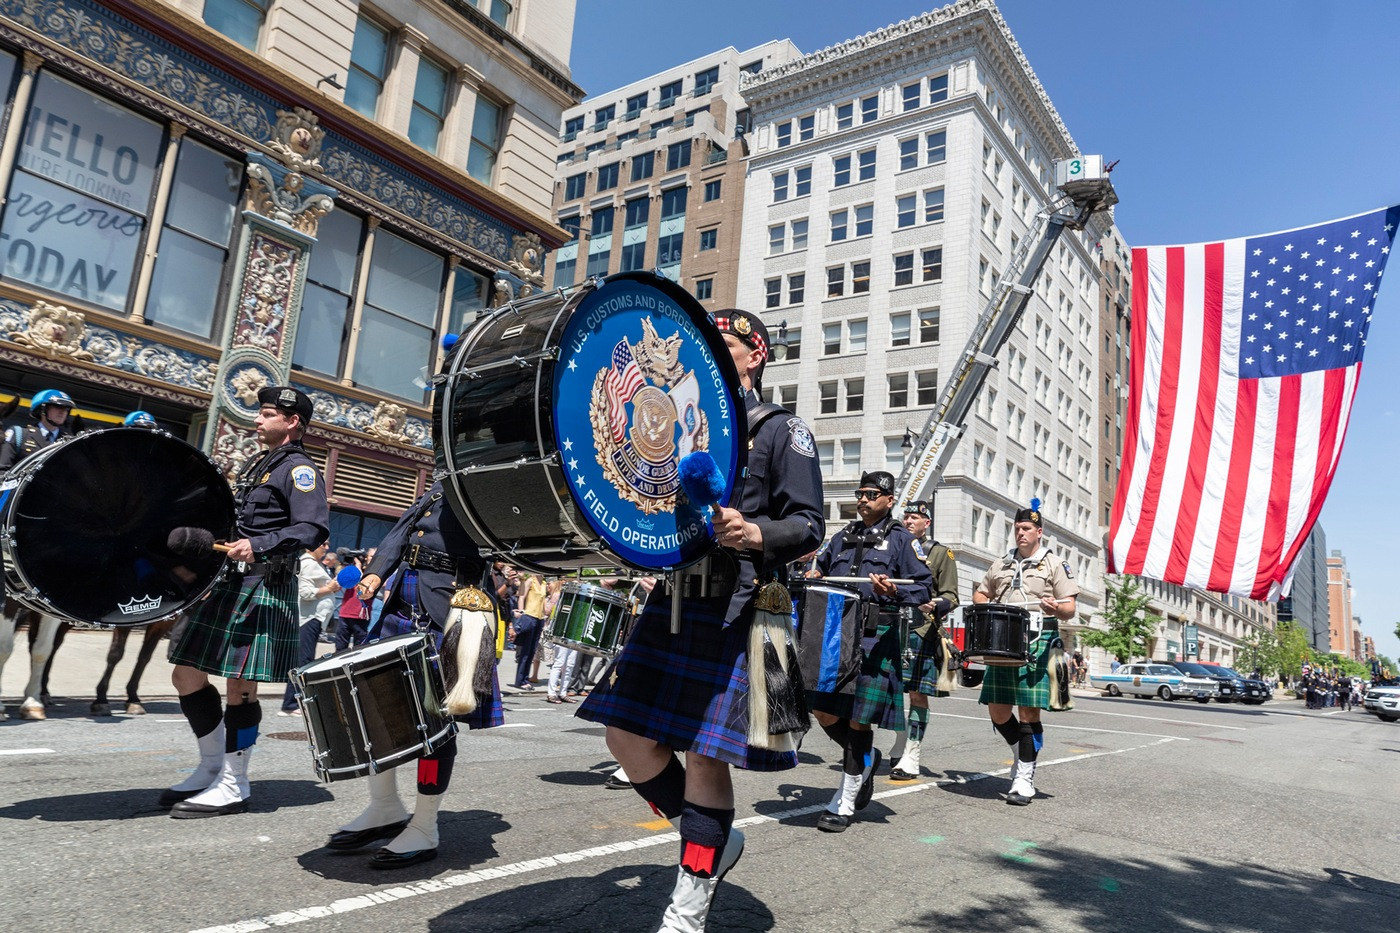 National Police Week 2019: Blue Mass Band Procession